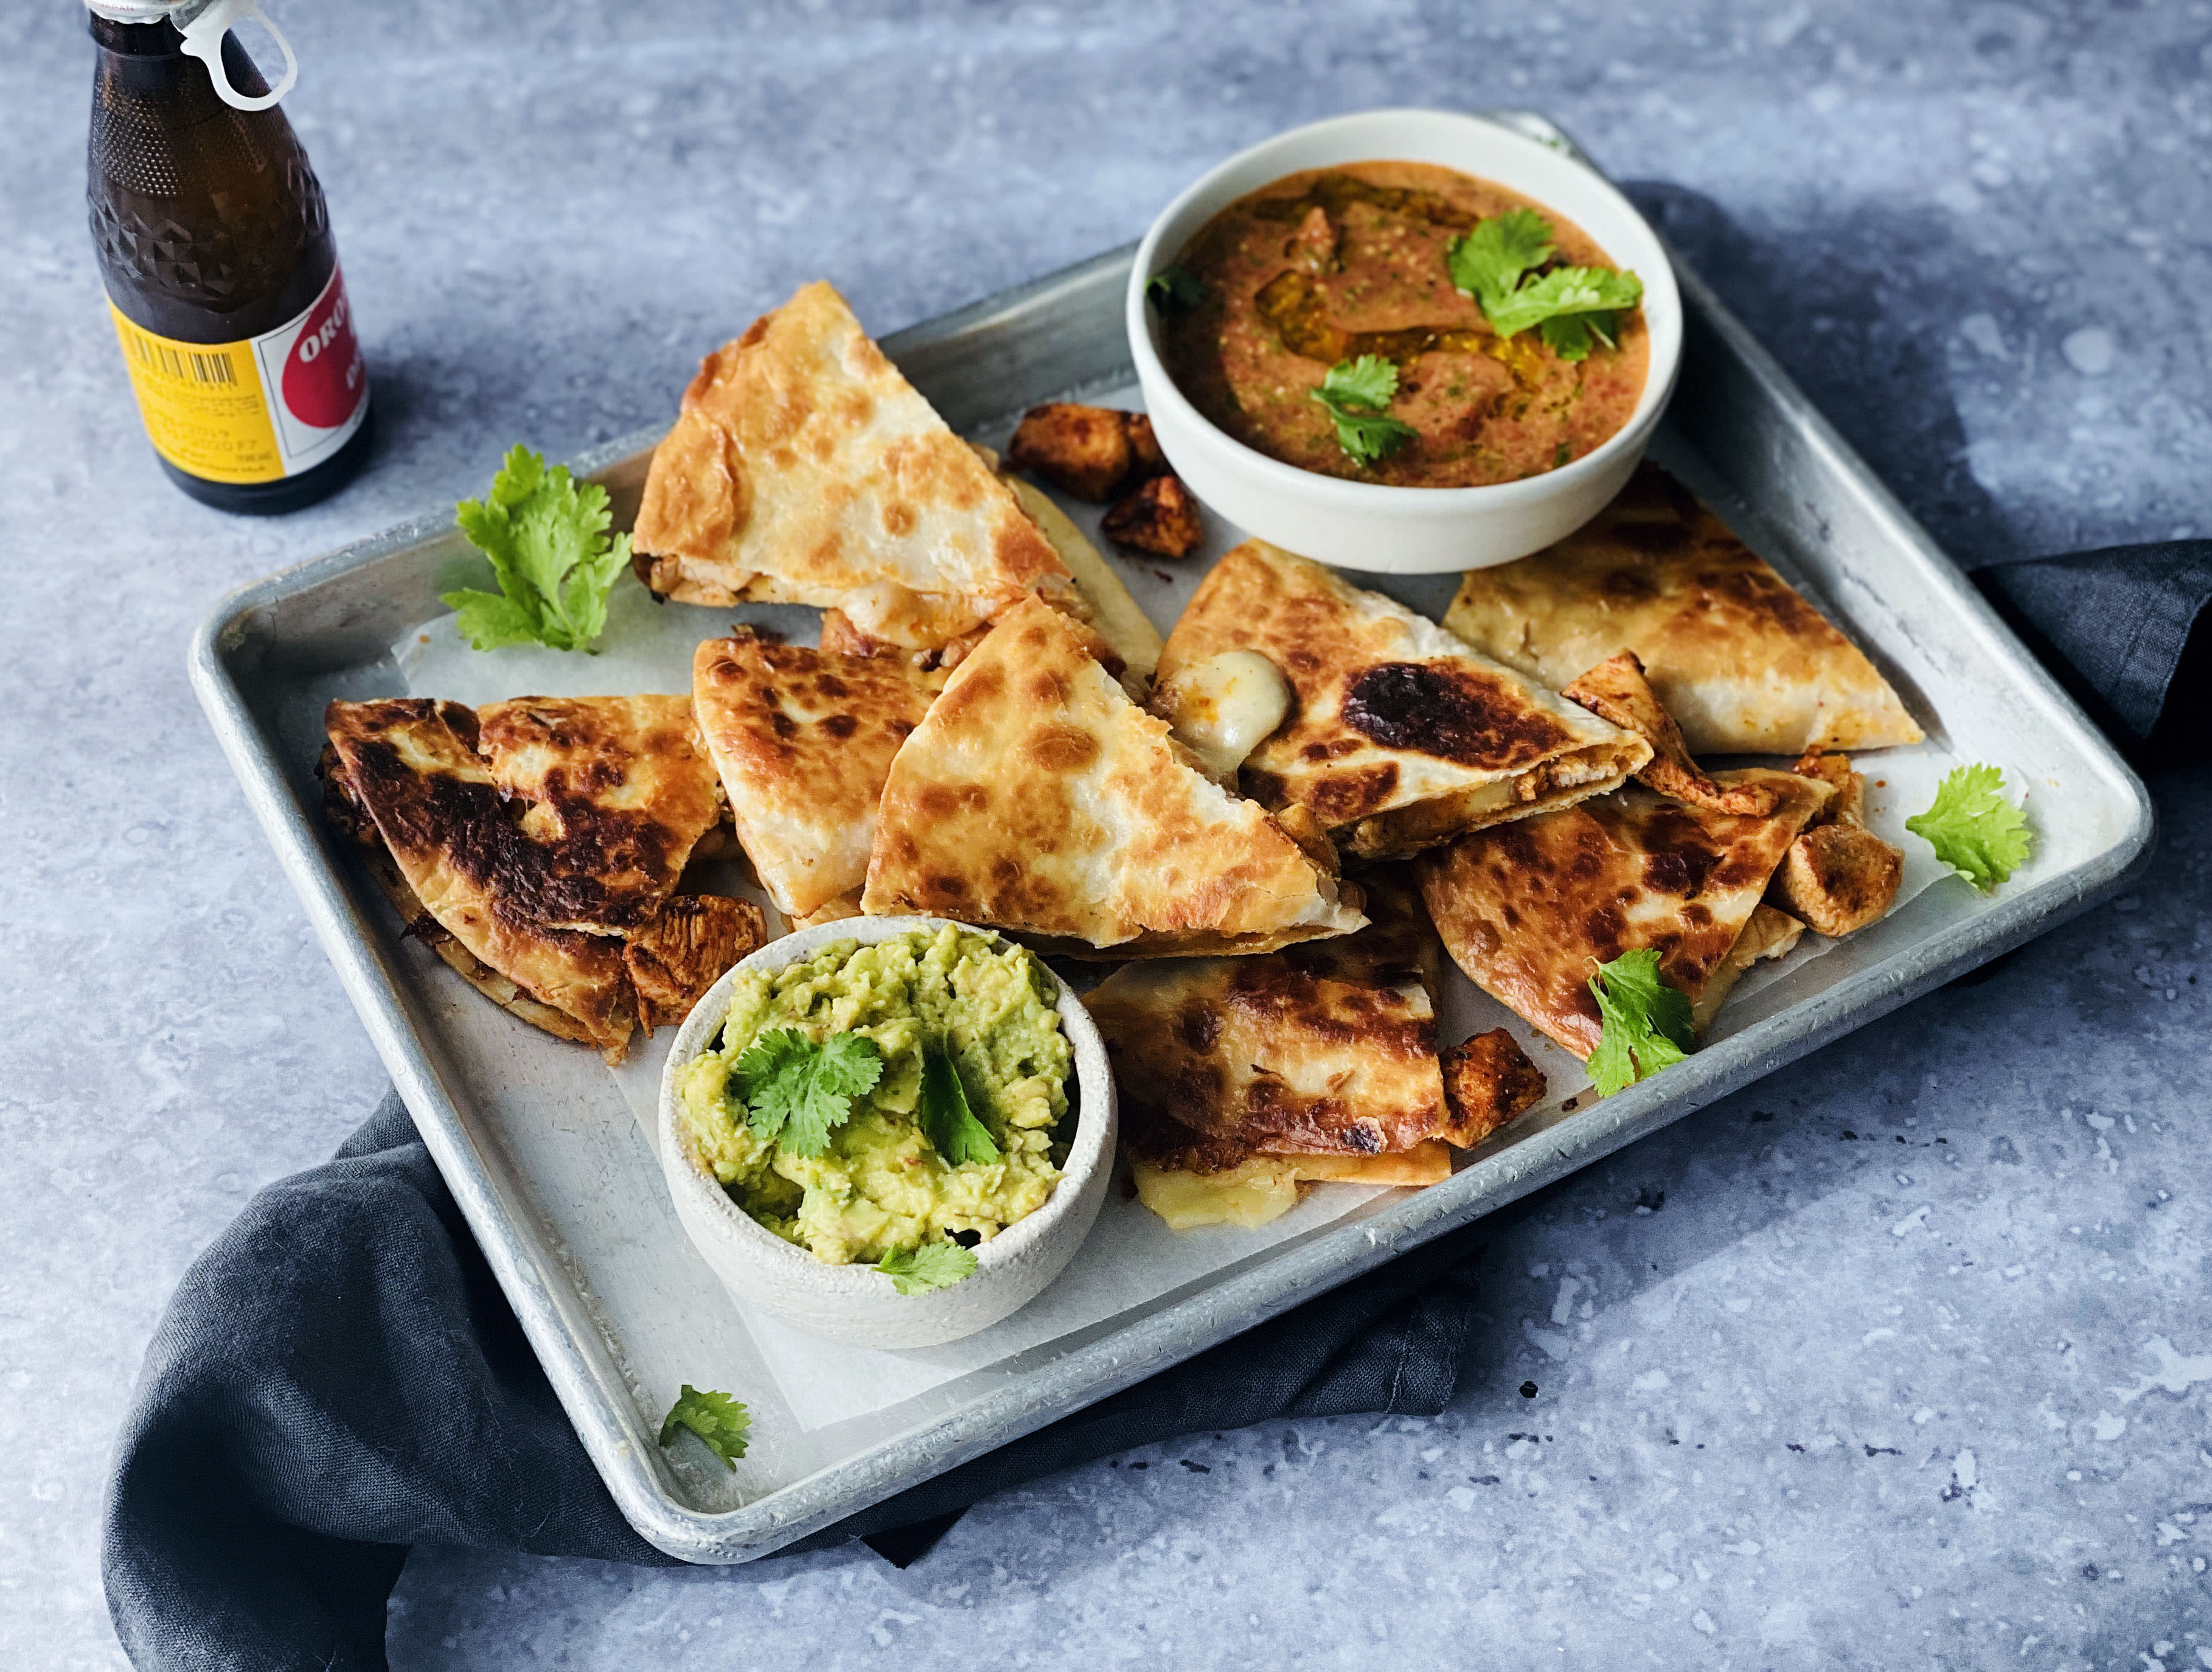 Smoky Chicken Quesadillas with Salsa and Smashed Avo